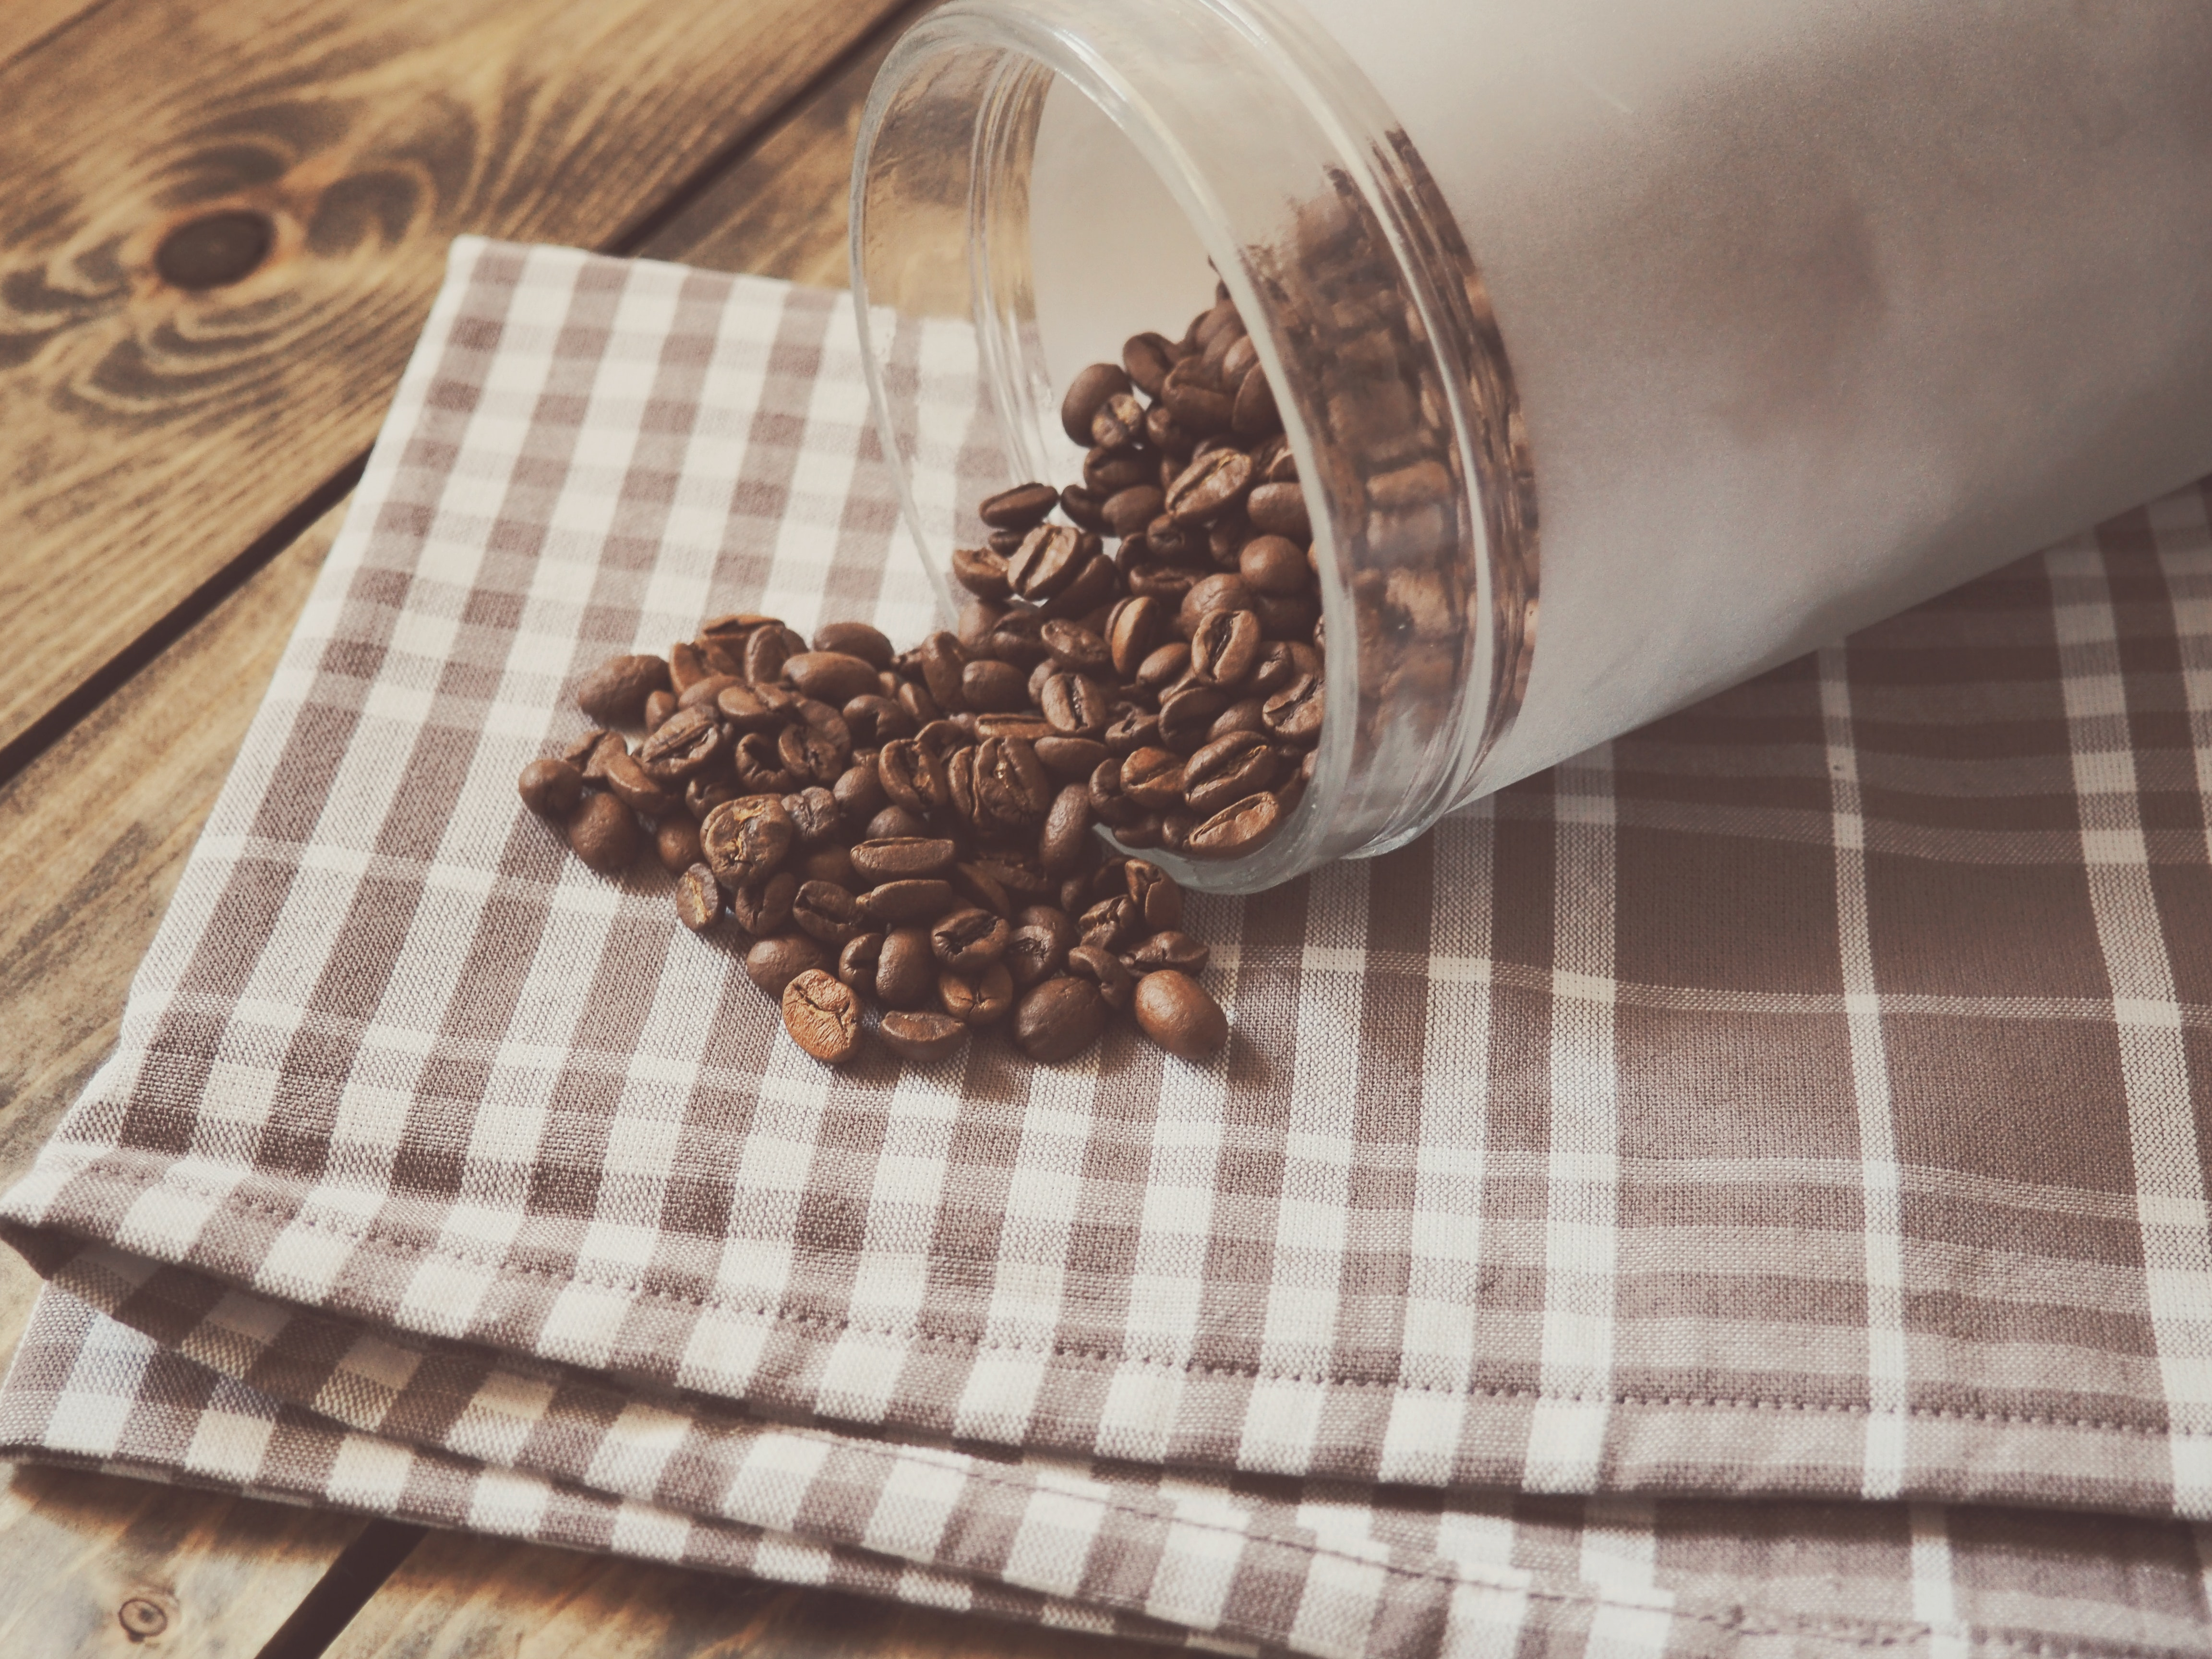 Coffee beans spilled on gray and white plaid textile photo